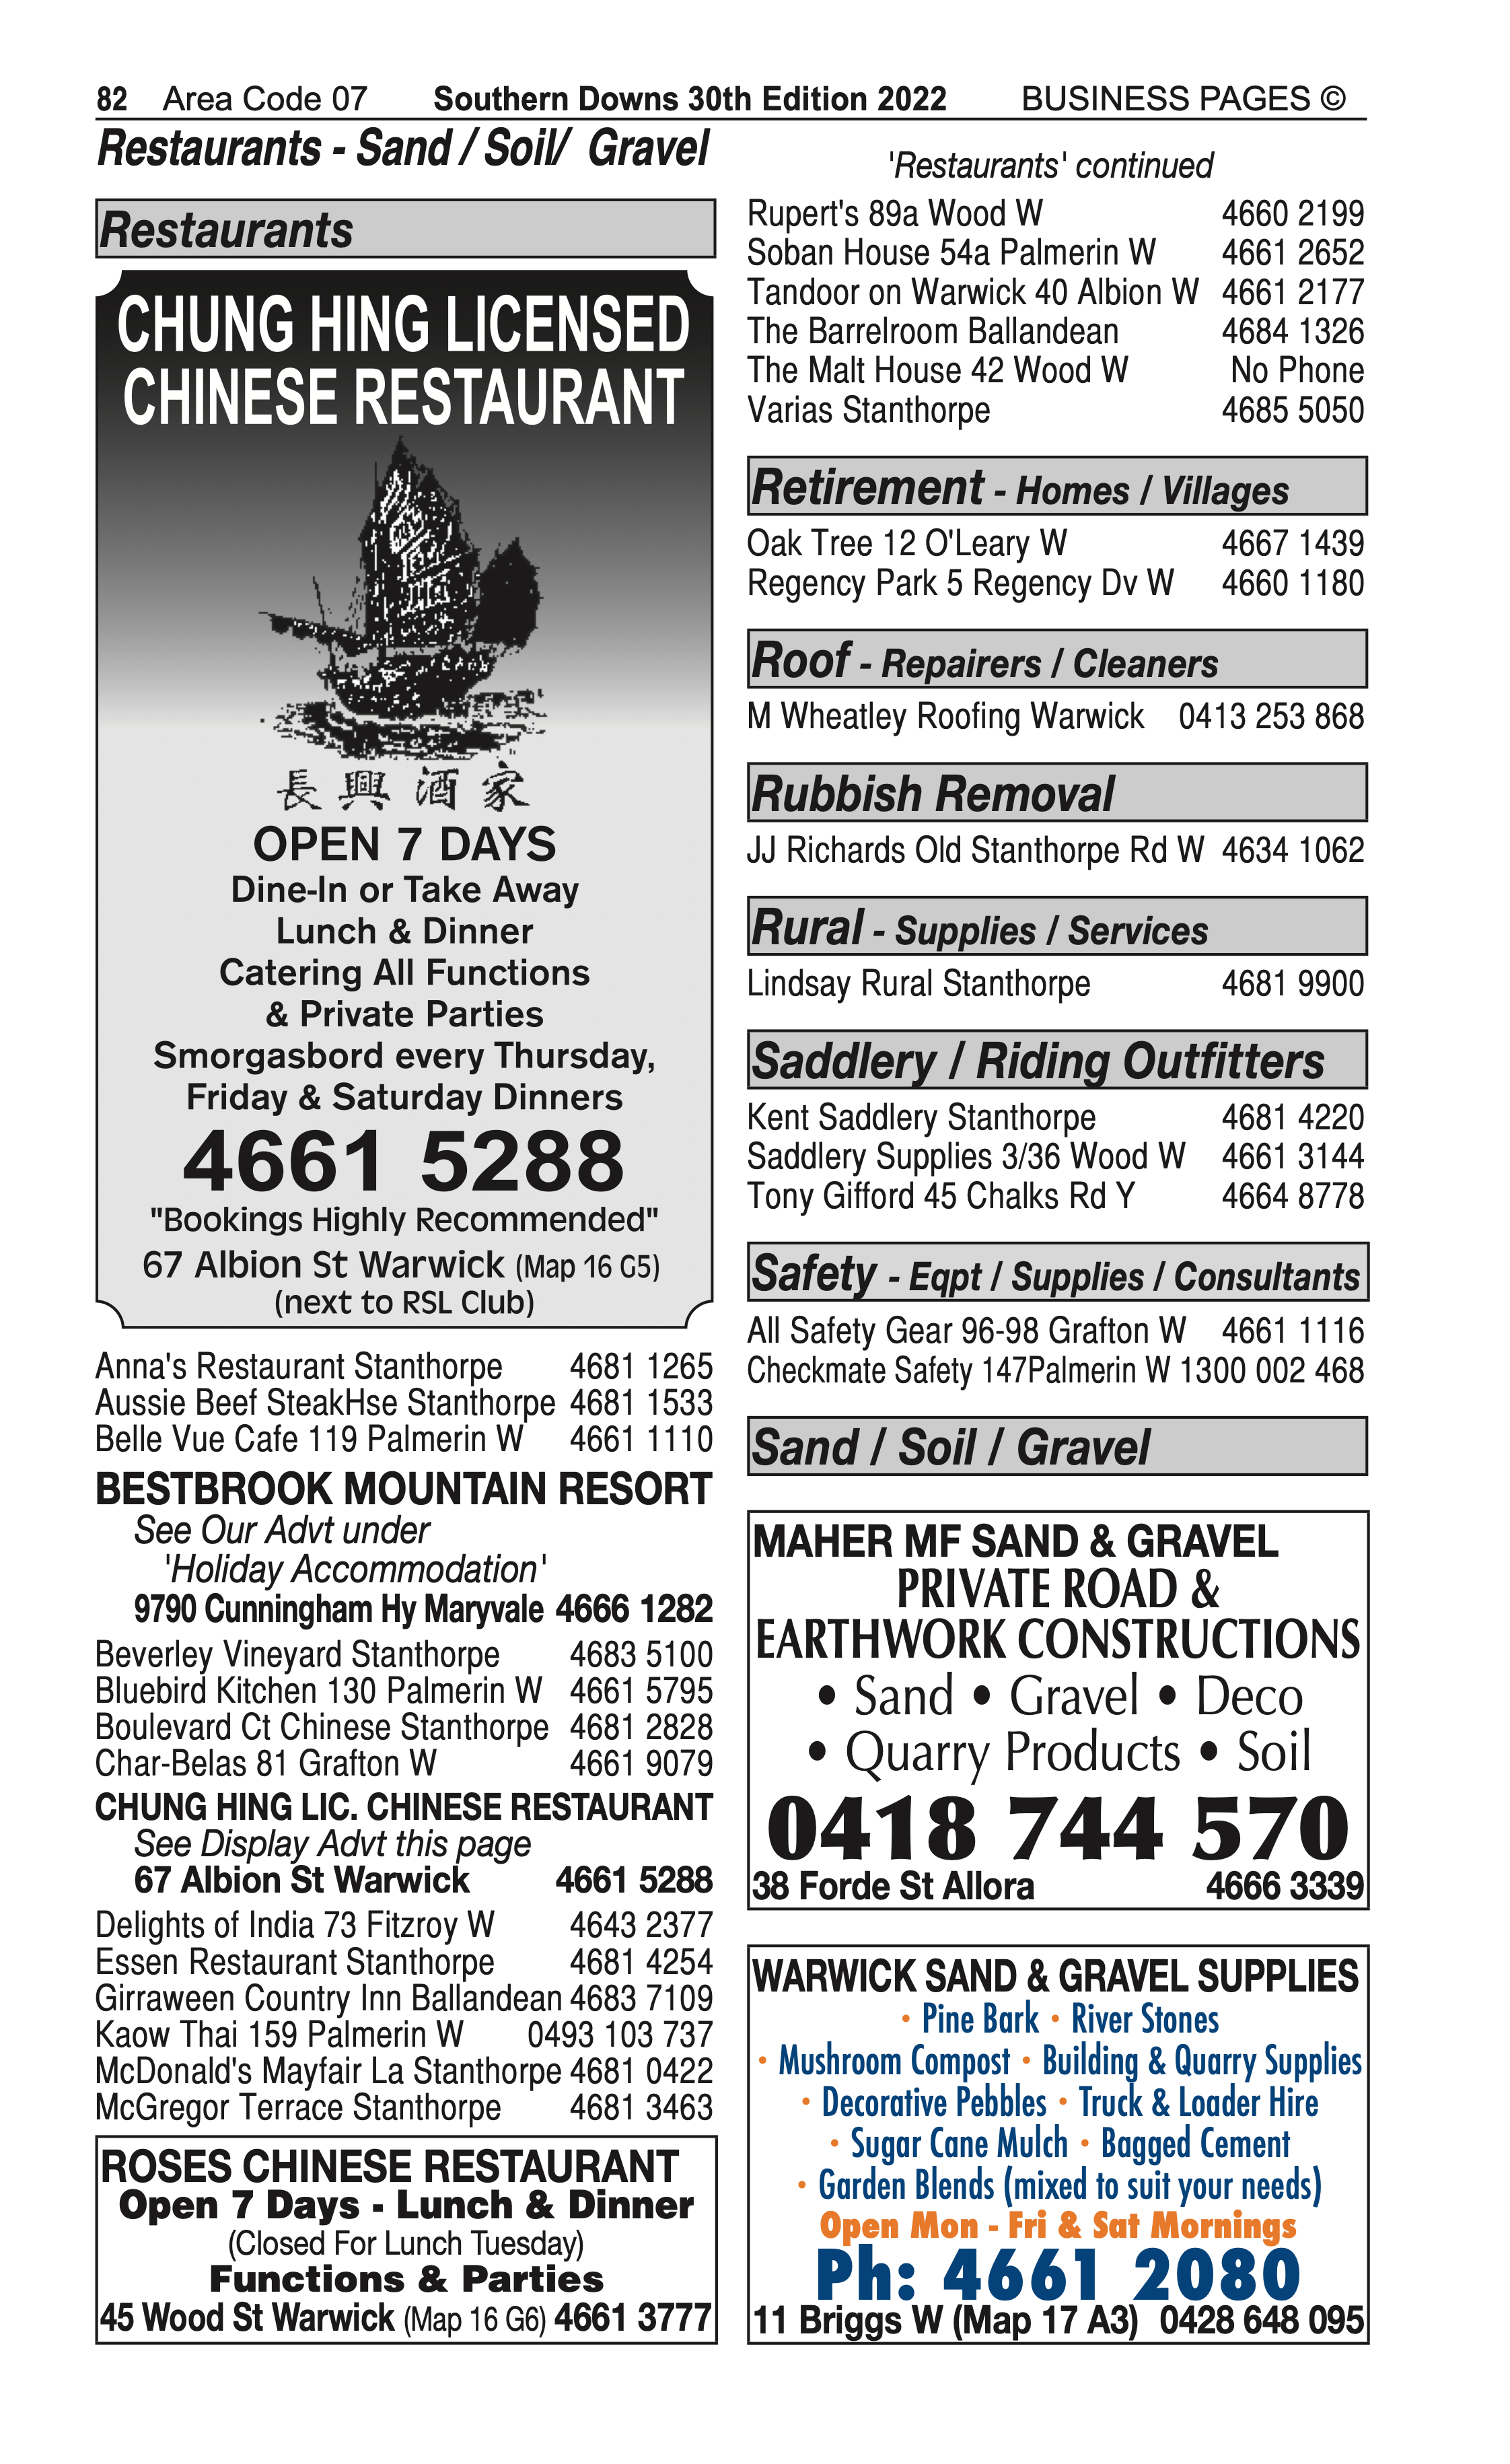 4 Water Supplies | Irrigation in Stanthorpe | PBezy Pocket Books local directories - page 82